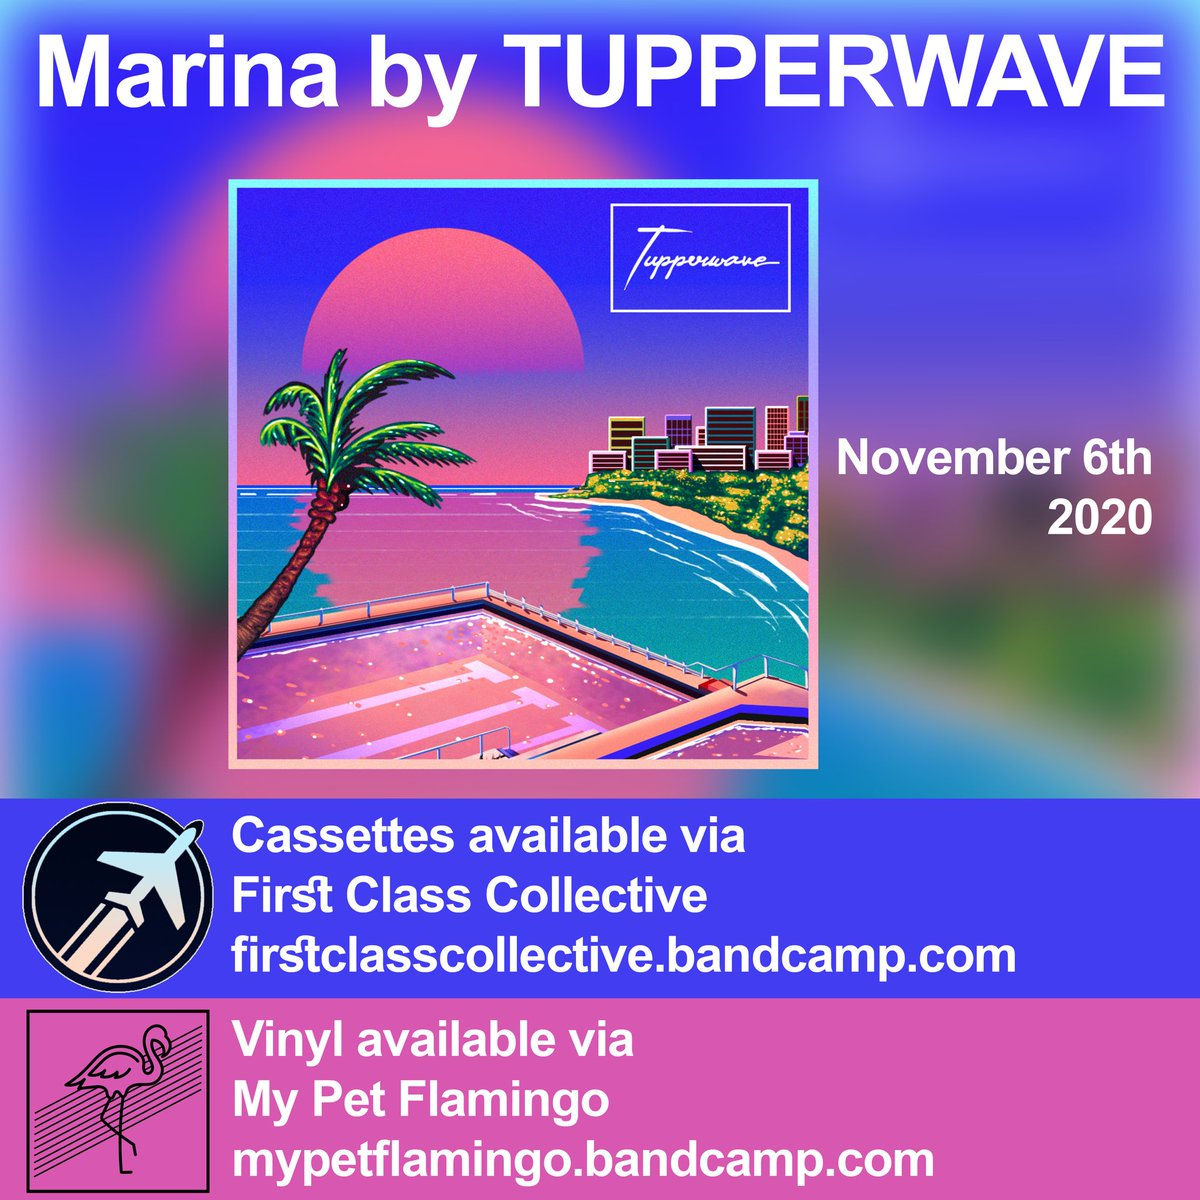 November 6th: 'Marina' by @TUPPERWAVEMUSIC   Cassettes via @firstclasslabel - https://t.co/5V7QN2u33h ✈️ Vinyl via My Pet Flamingo - https://t.co/t3AQaZuPzL 🦩 Always great working with other vaporwave labels, especially on such a stellar release! #tupperwave #marina https://t.co/gAt05c3qTm